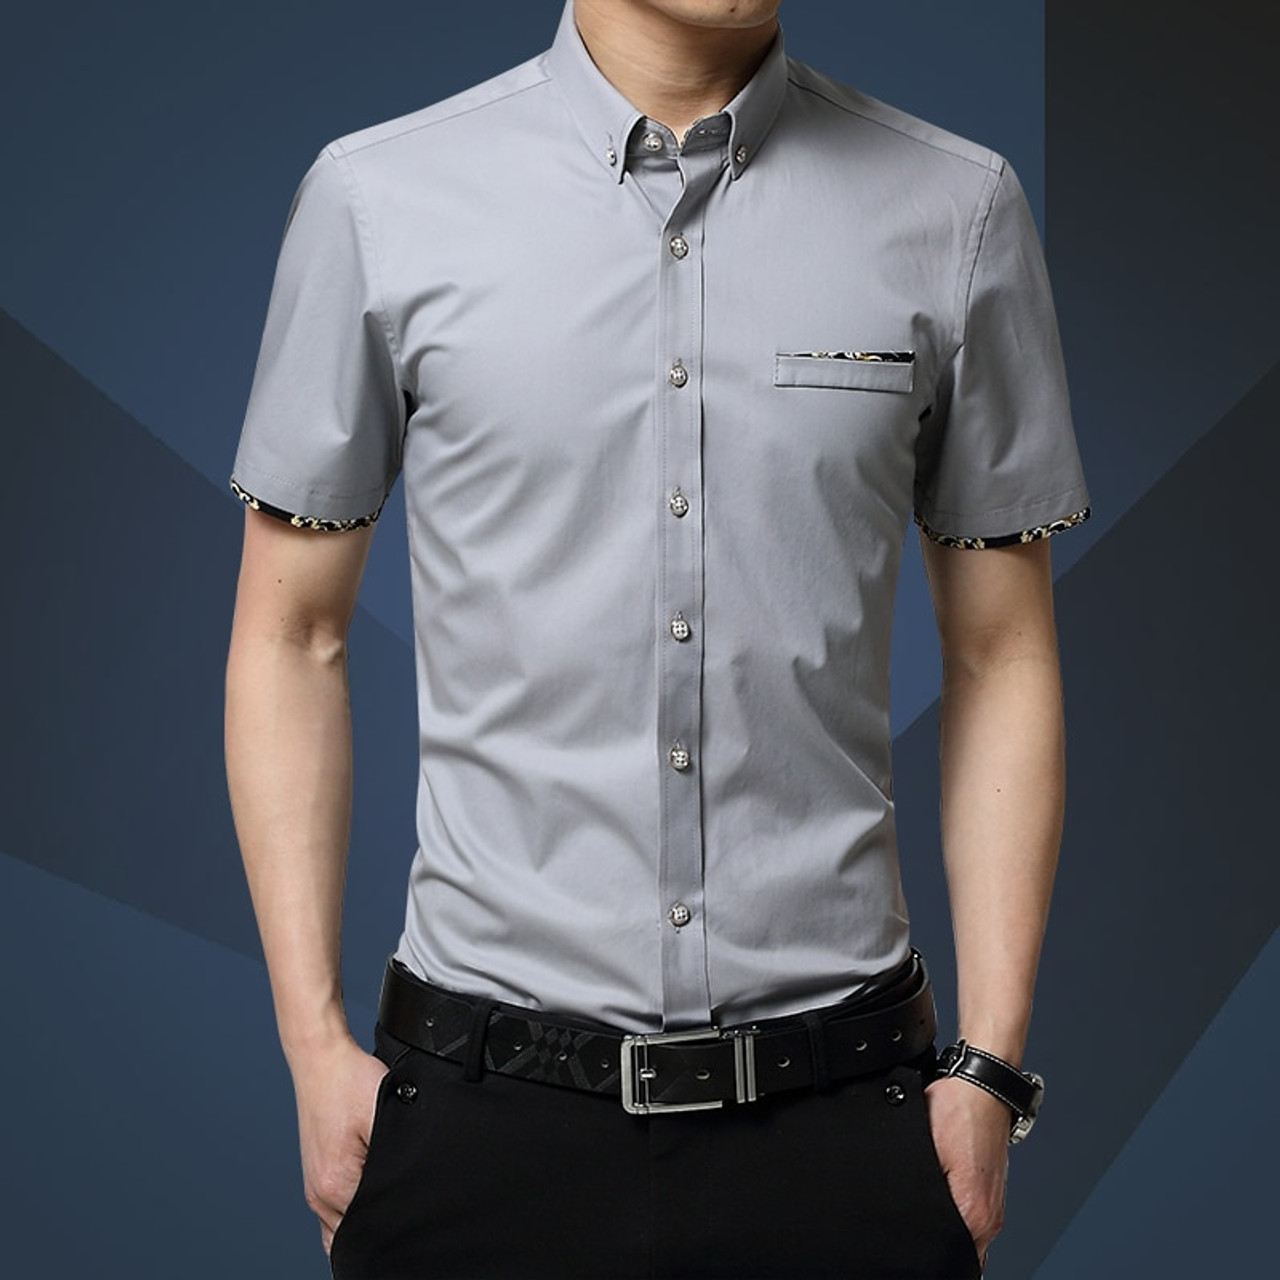 539de8184 ... 2018 New Brand Men Shirts Brand Turn-down Collar Slim Fit Men Chemise  Homme Casual ...